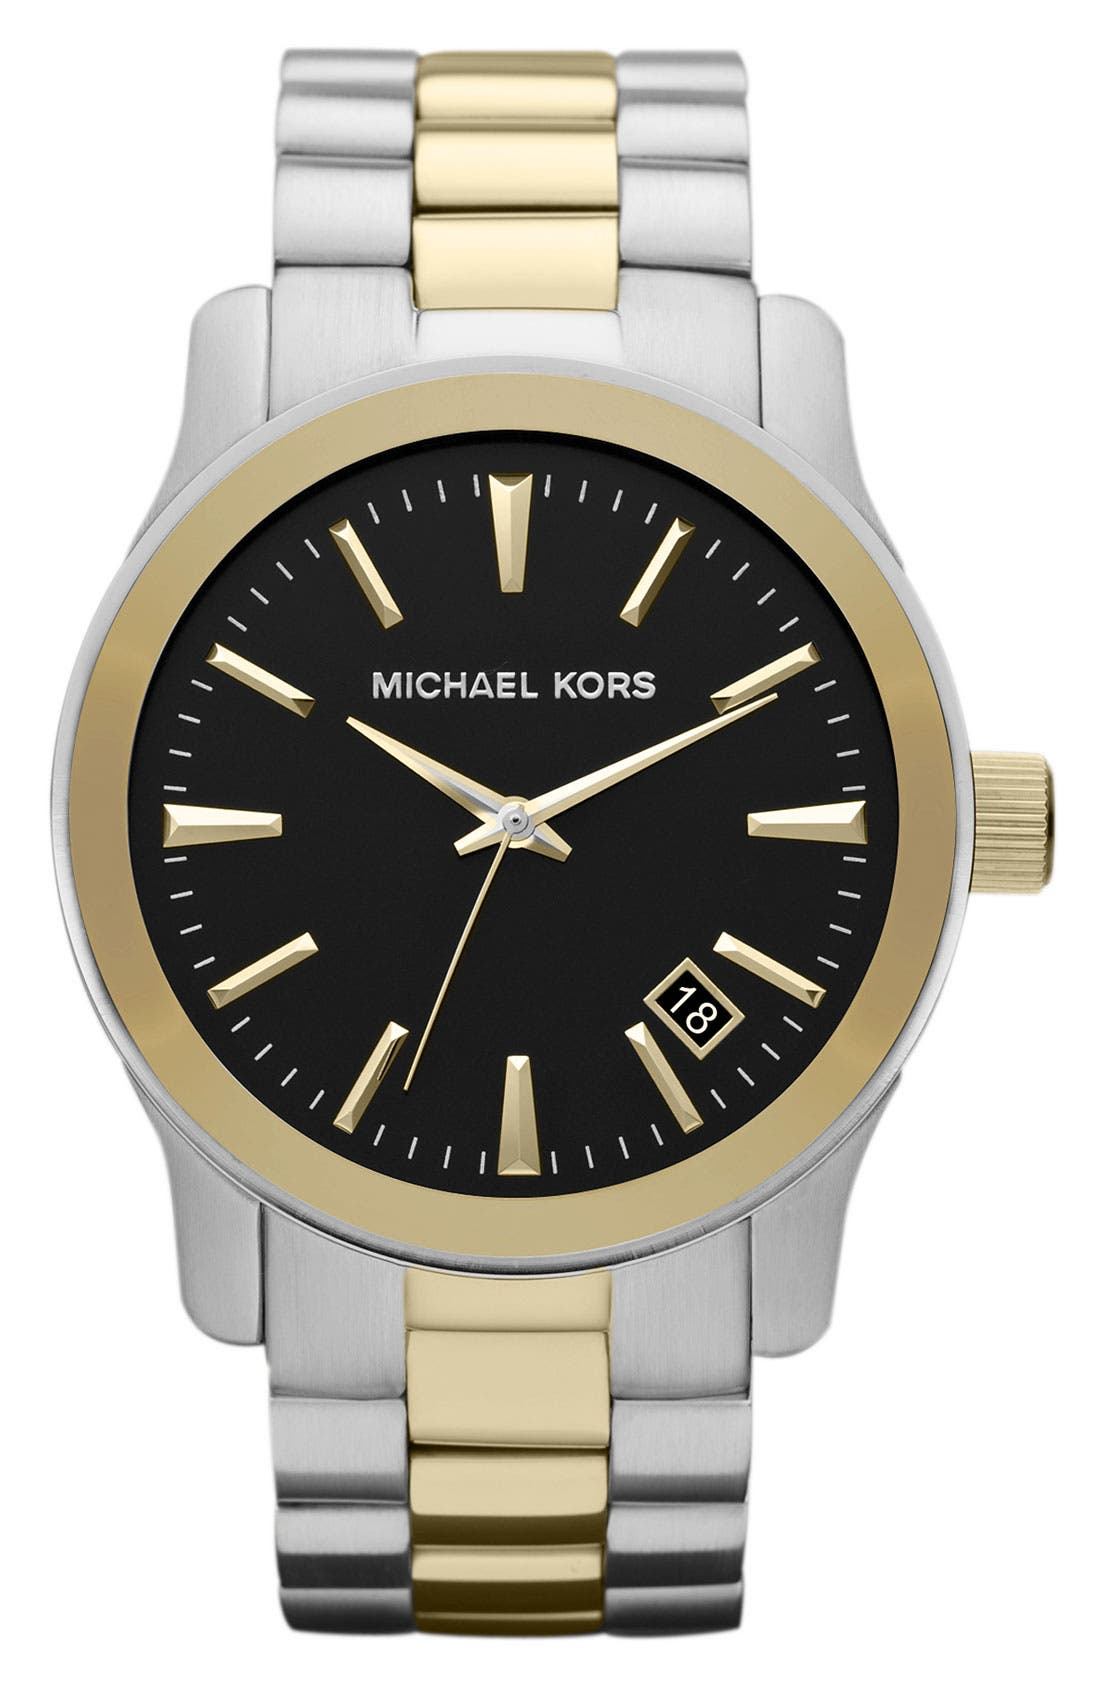 Main Image - Michael Kors 'Large Runway' Bracelet Watch, 44mm